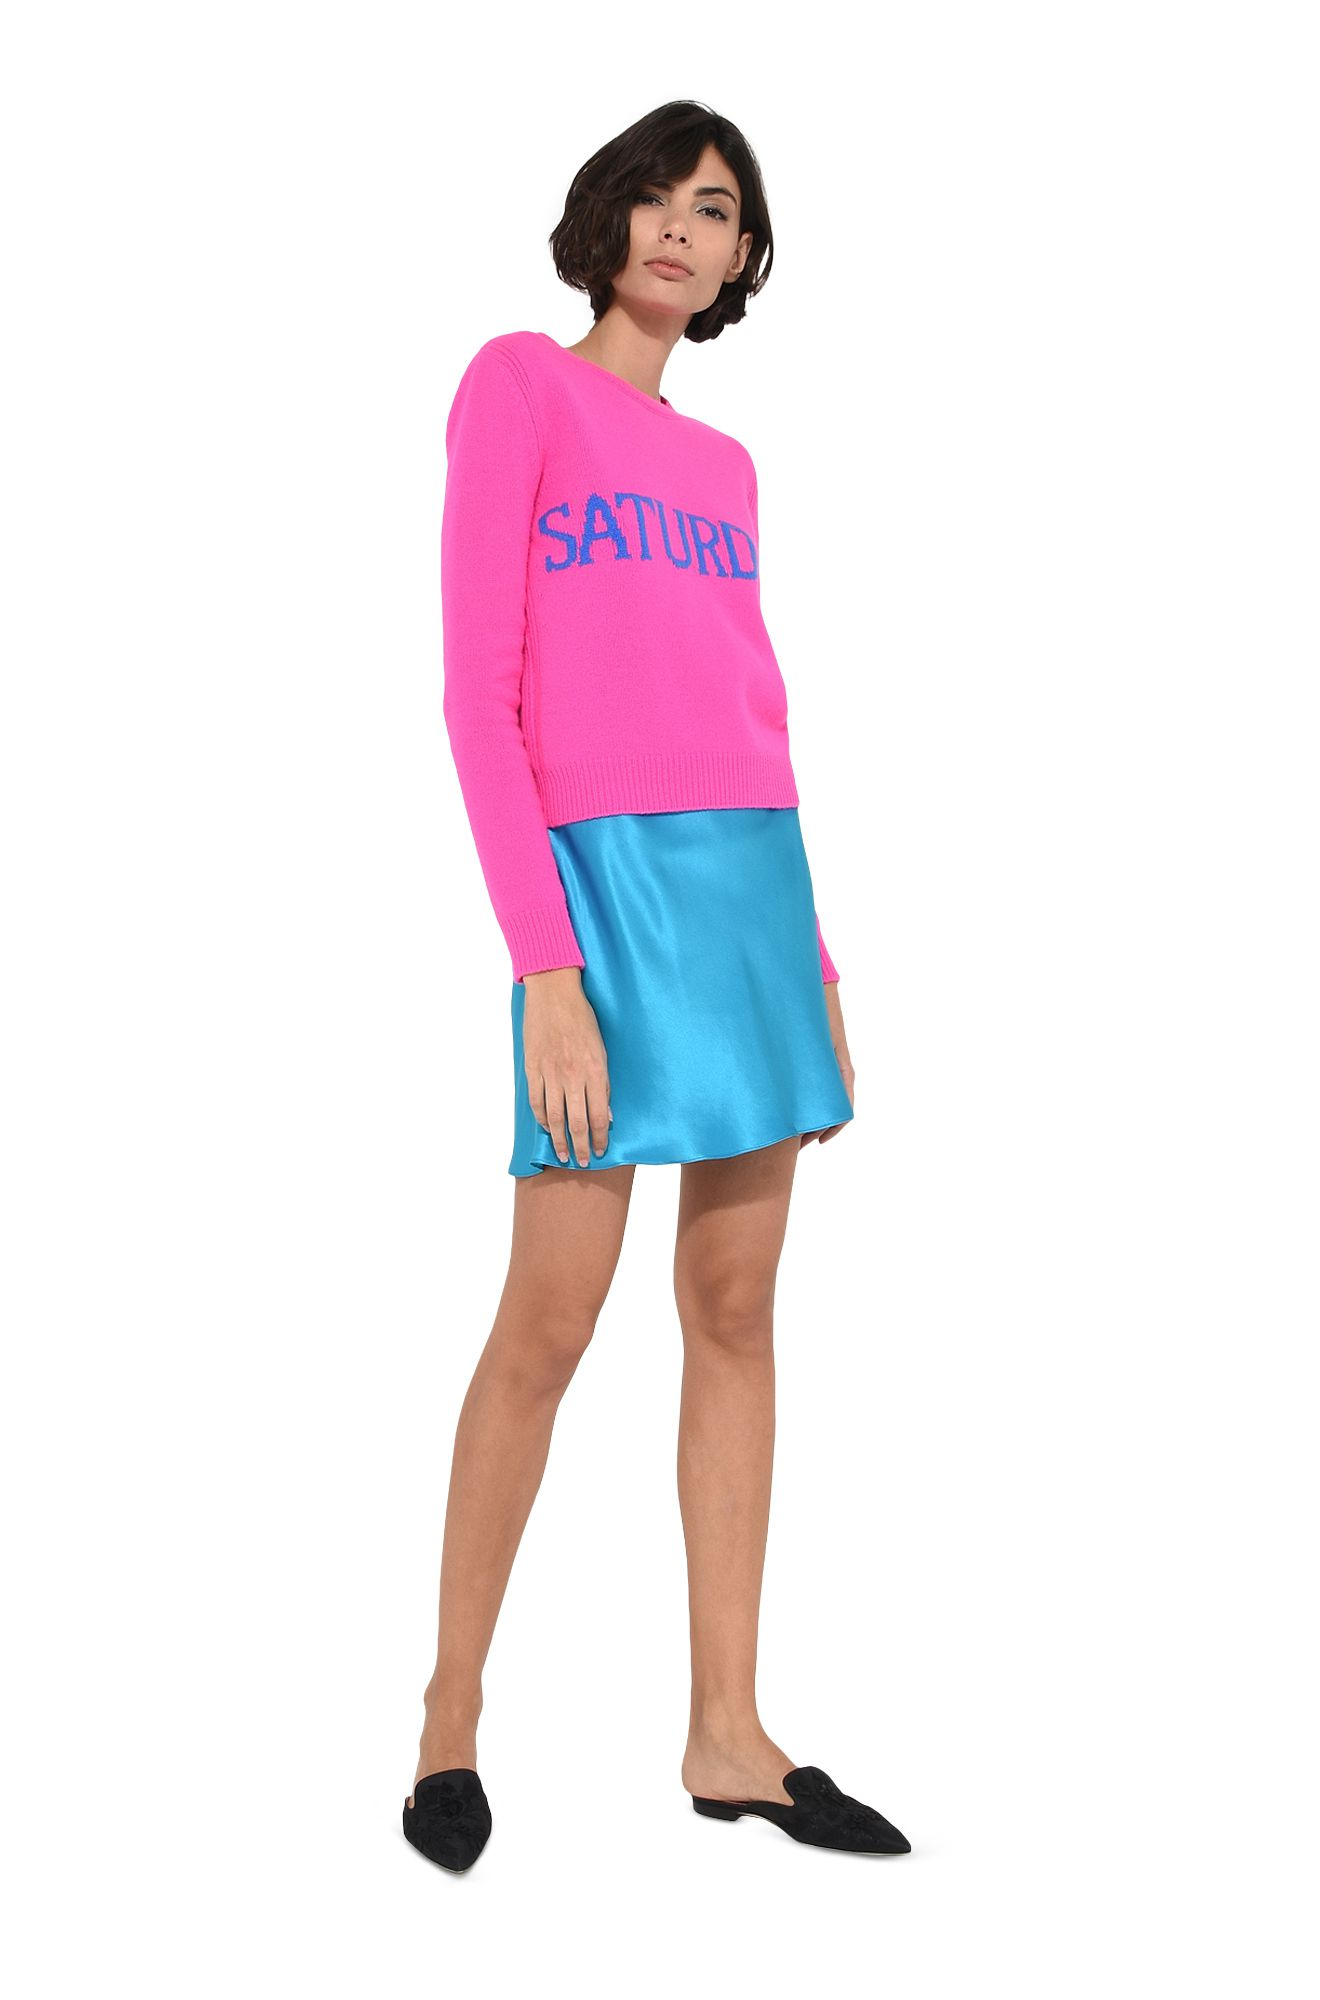 Saturday fluo sweater